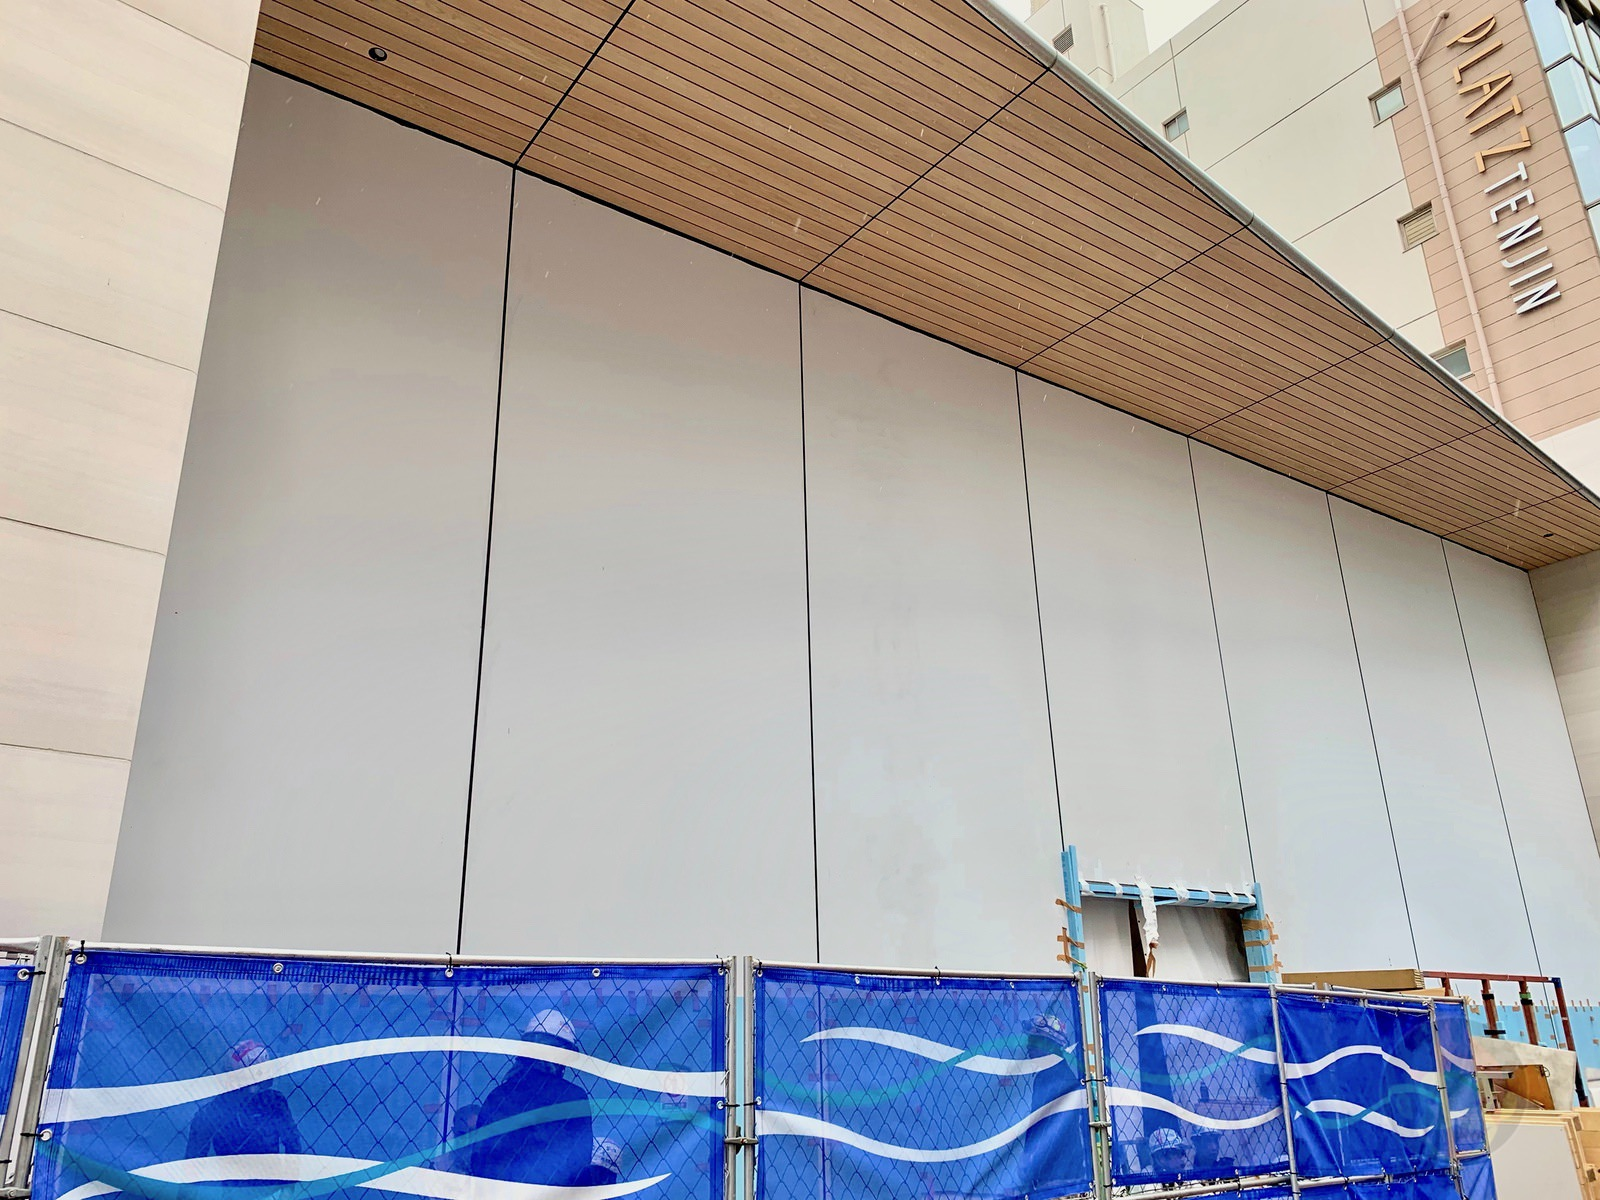 Apple-Fukuoka-Tenjin-Under-Construction-06.jpg